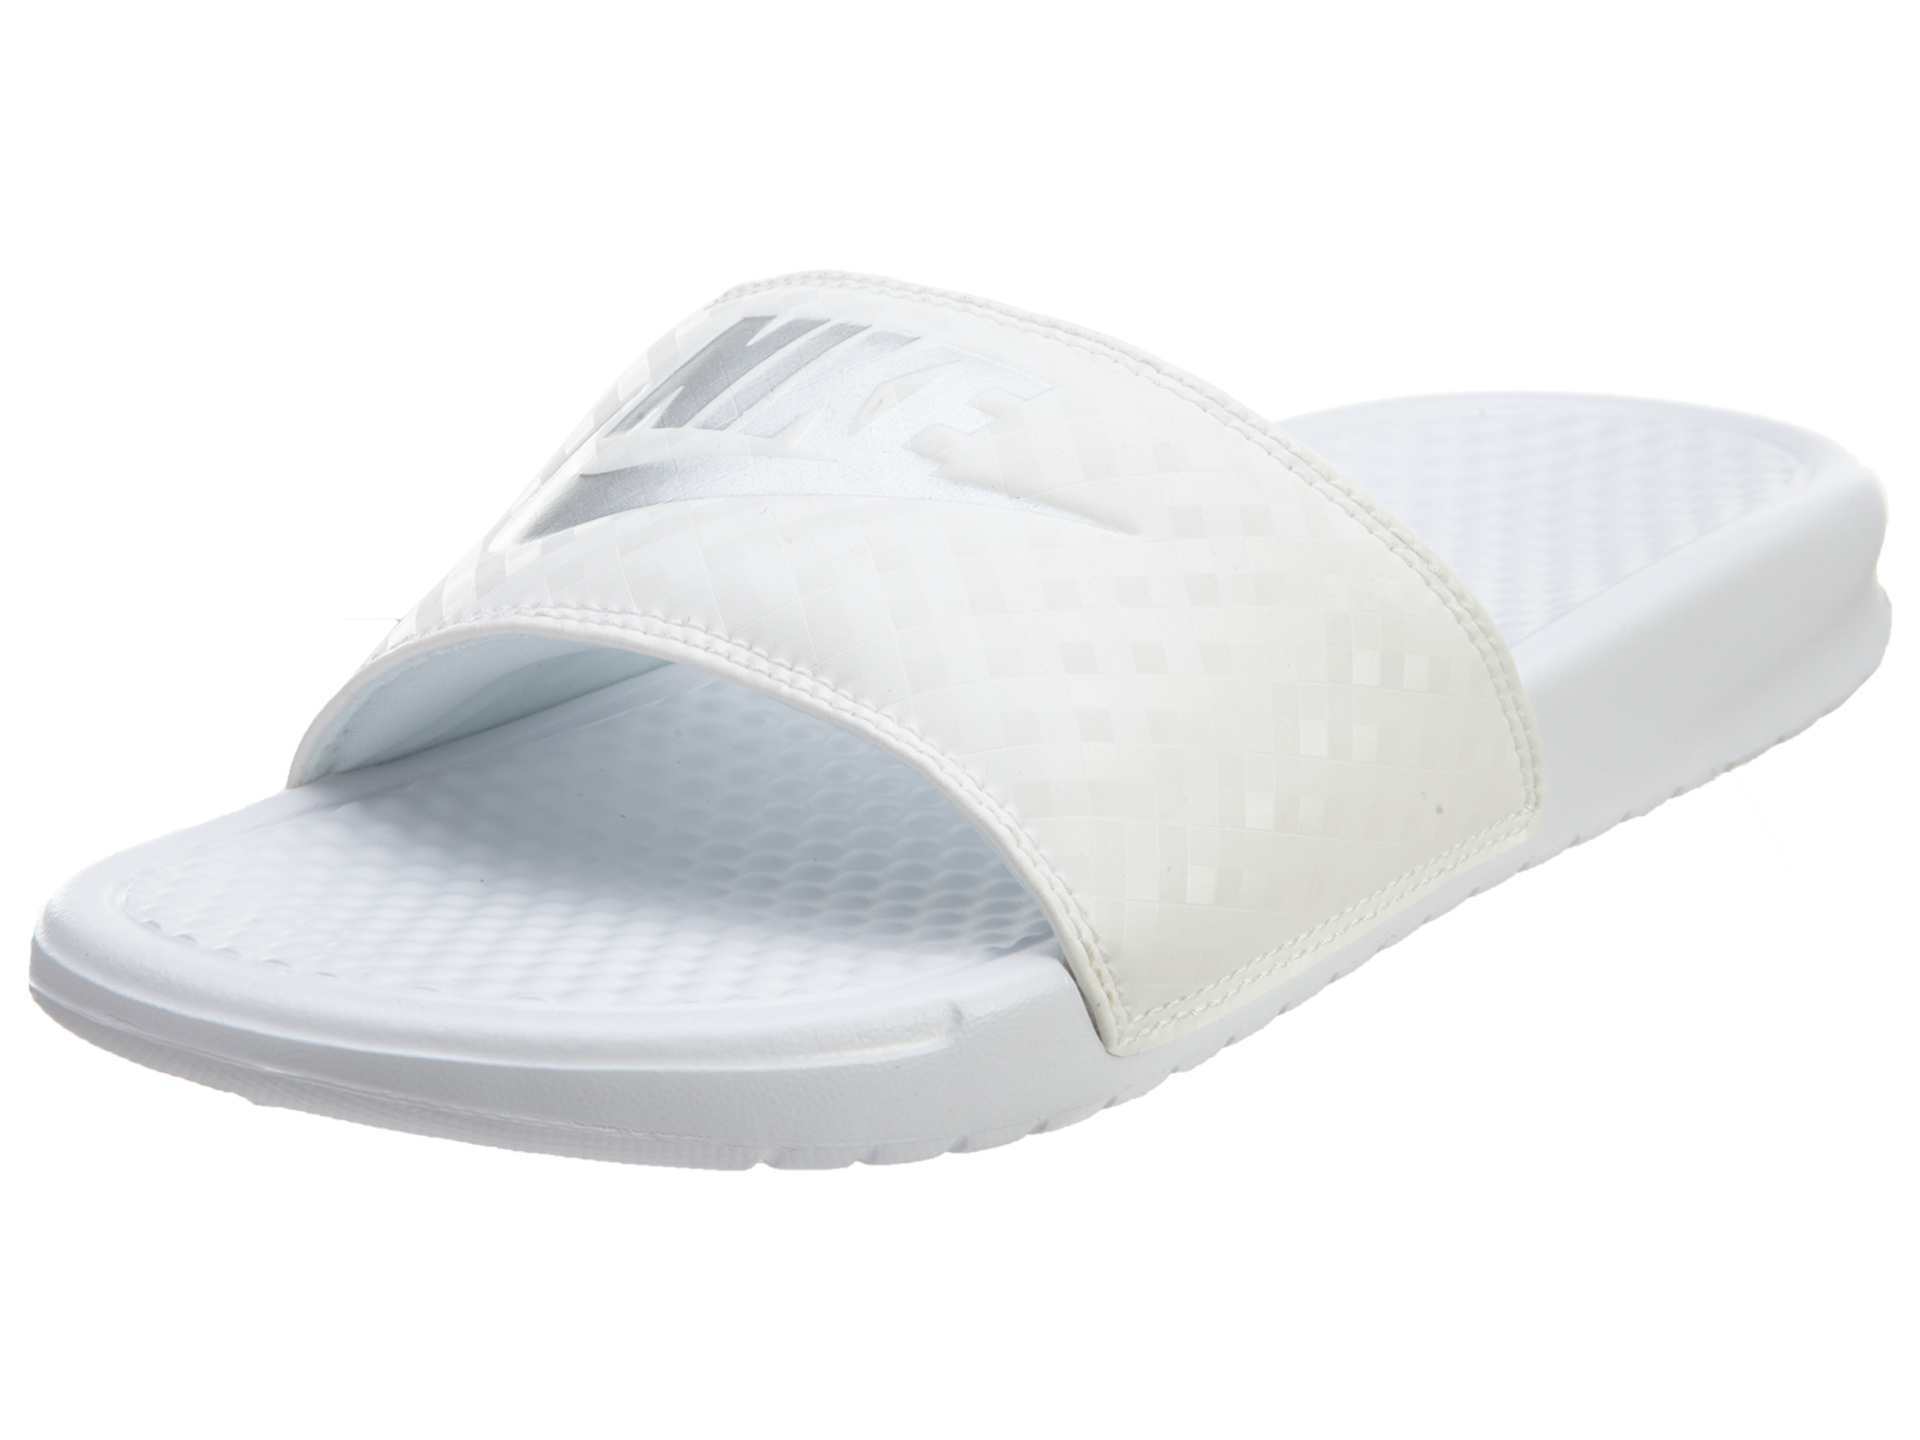 8dc439fb4205 Details about Nike Womens Benassi JDI Slide Sandals 343881-102